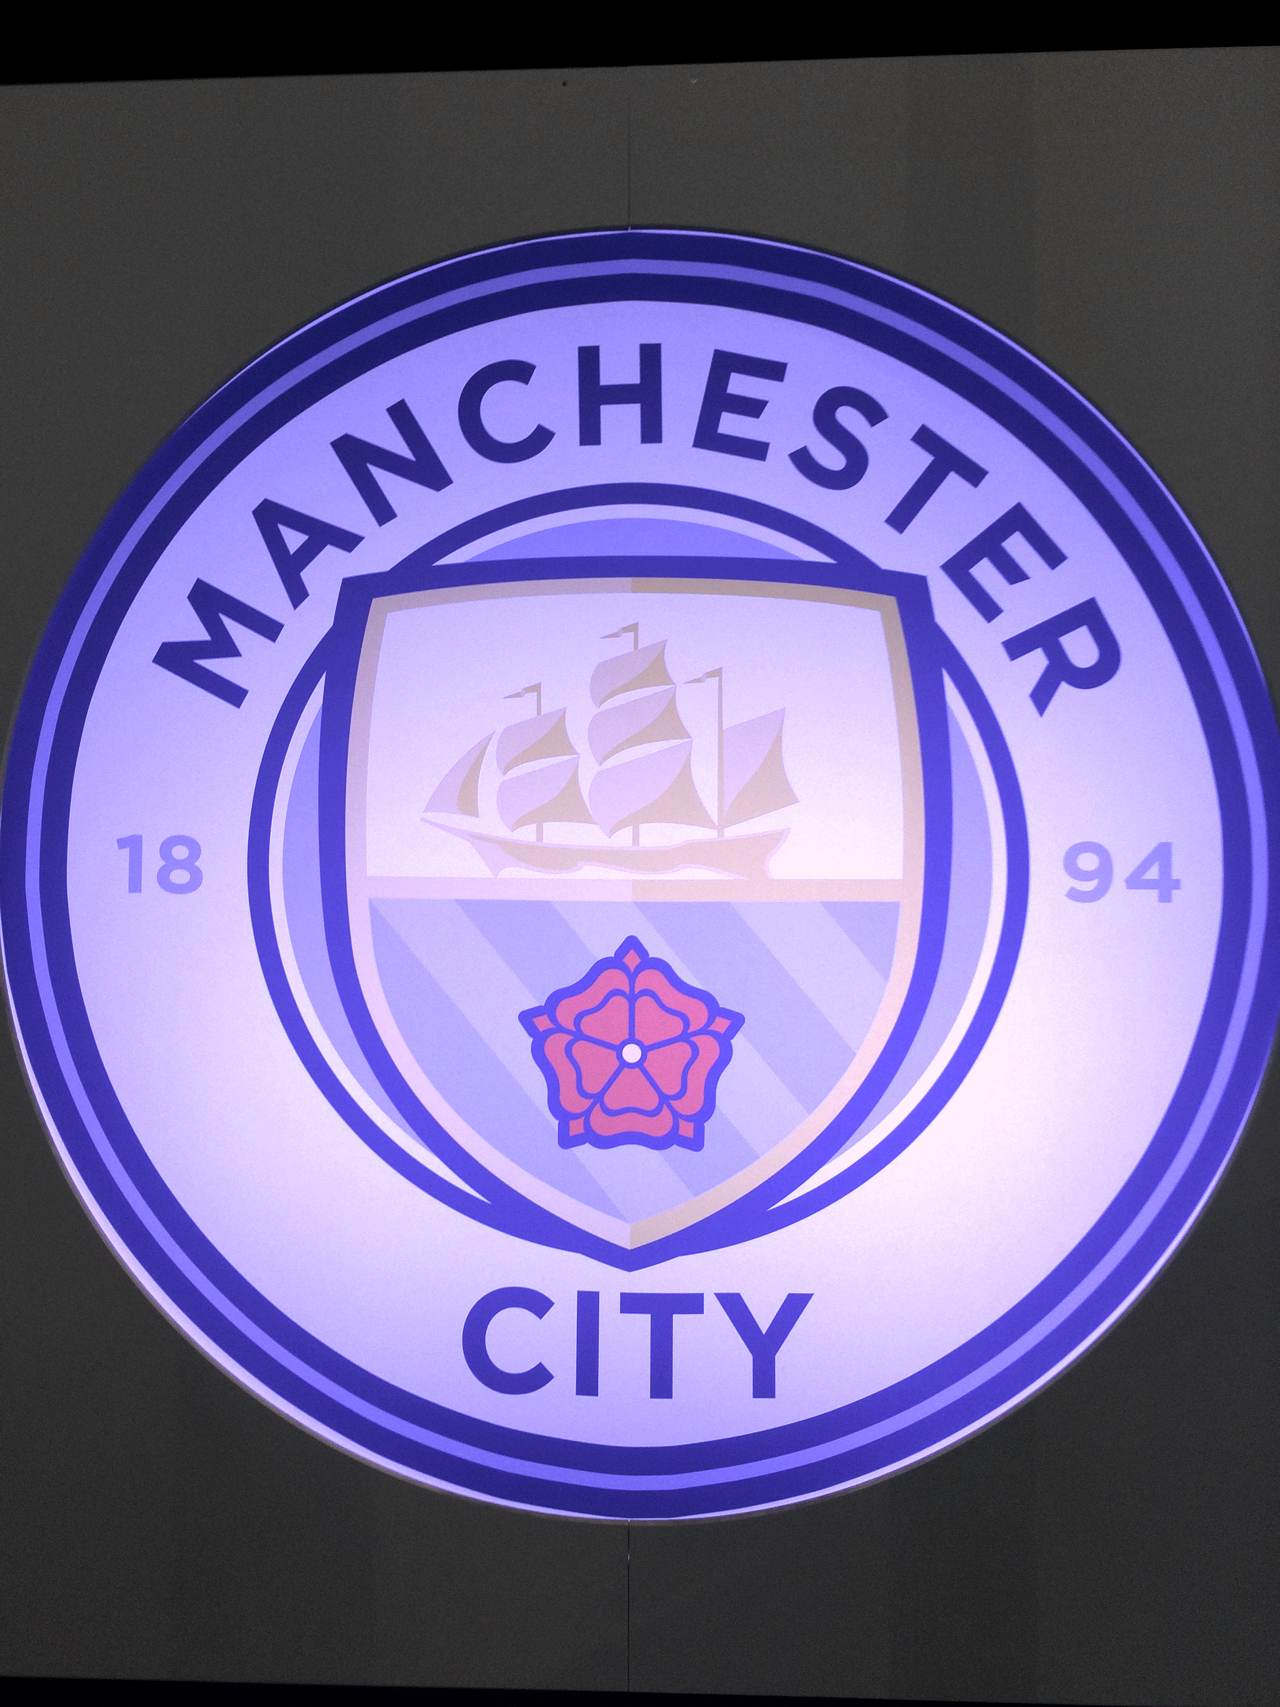 Manchester City unveil new club badge - Manchester Football